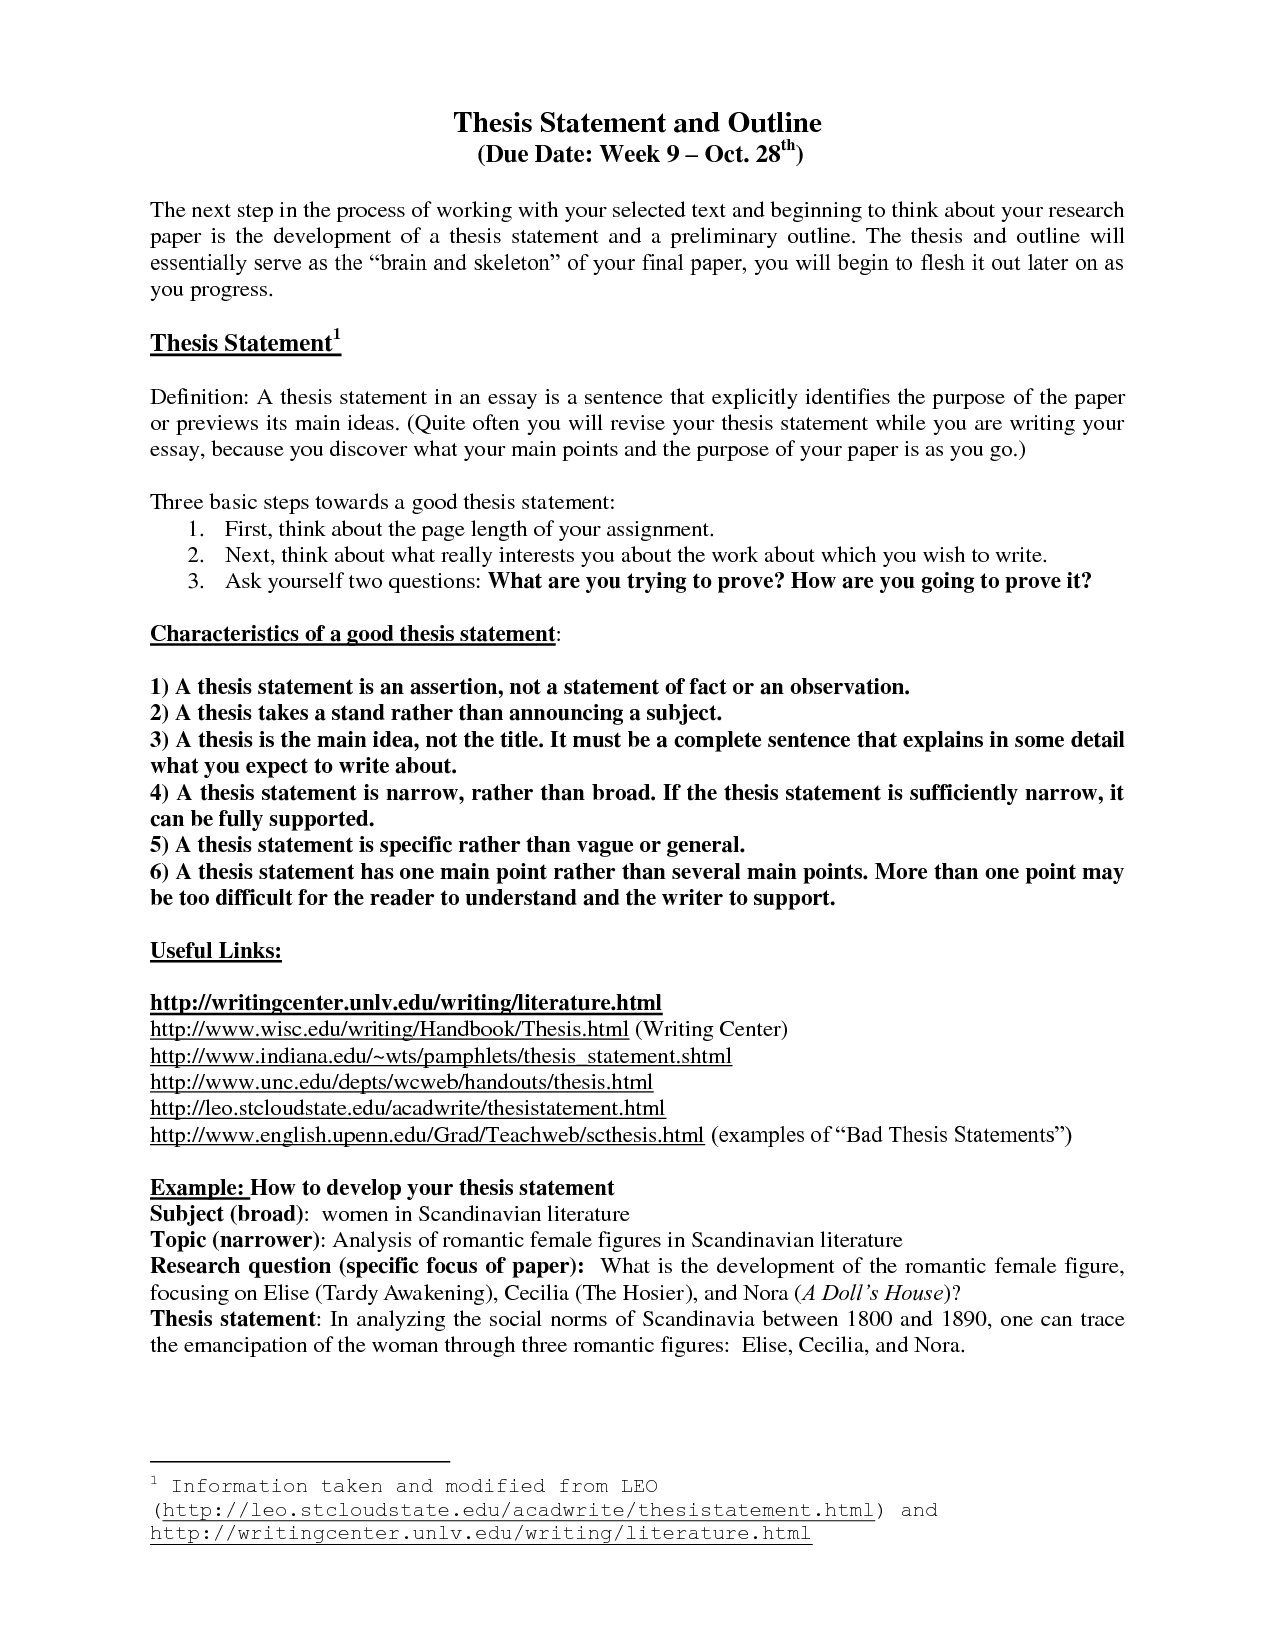 022 Good Research Paper Topics For English Surprising 102 Full